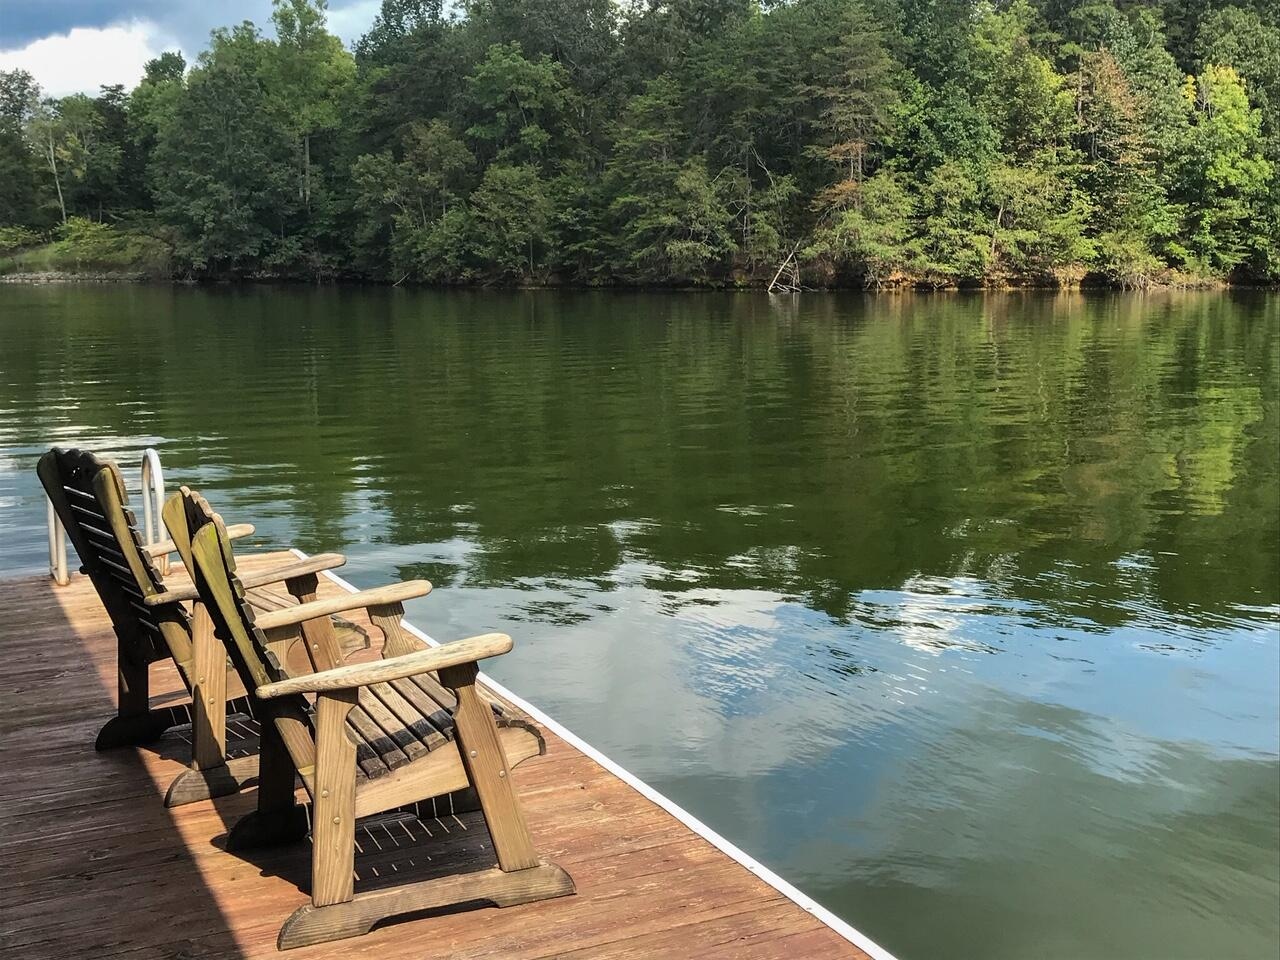 Two chairs on a dock on the lake